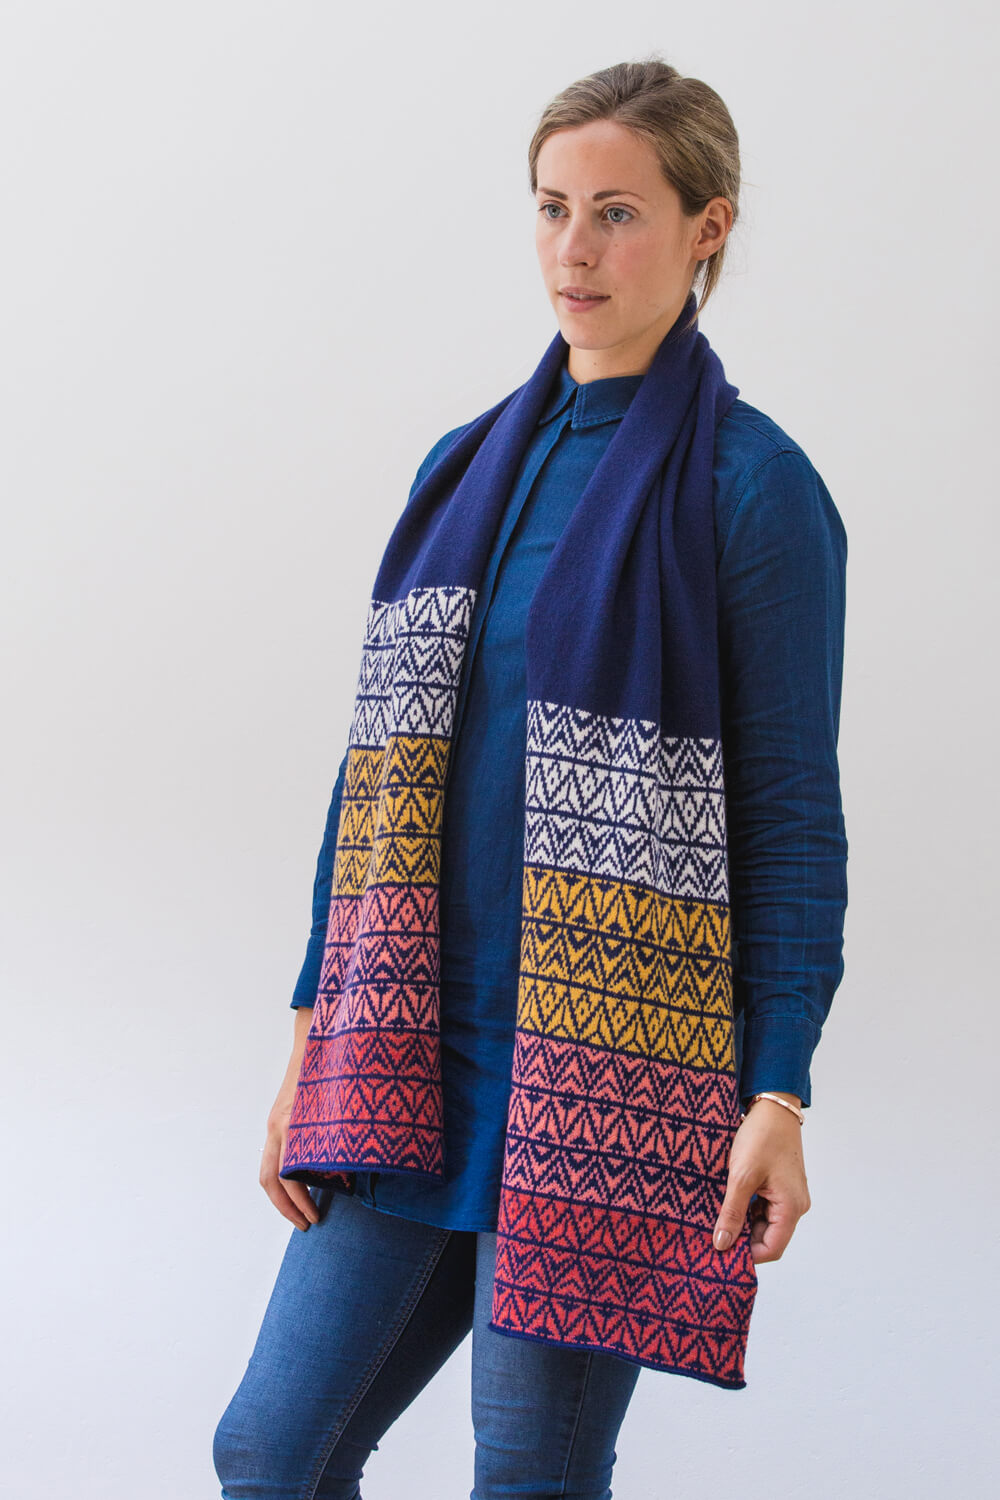 Yarrow Scarf- available while colours last.